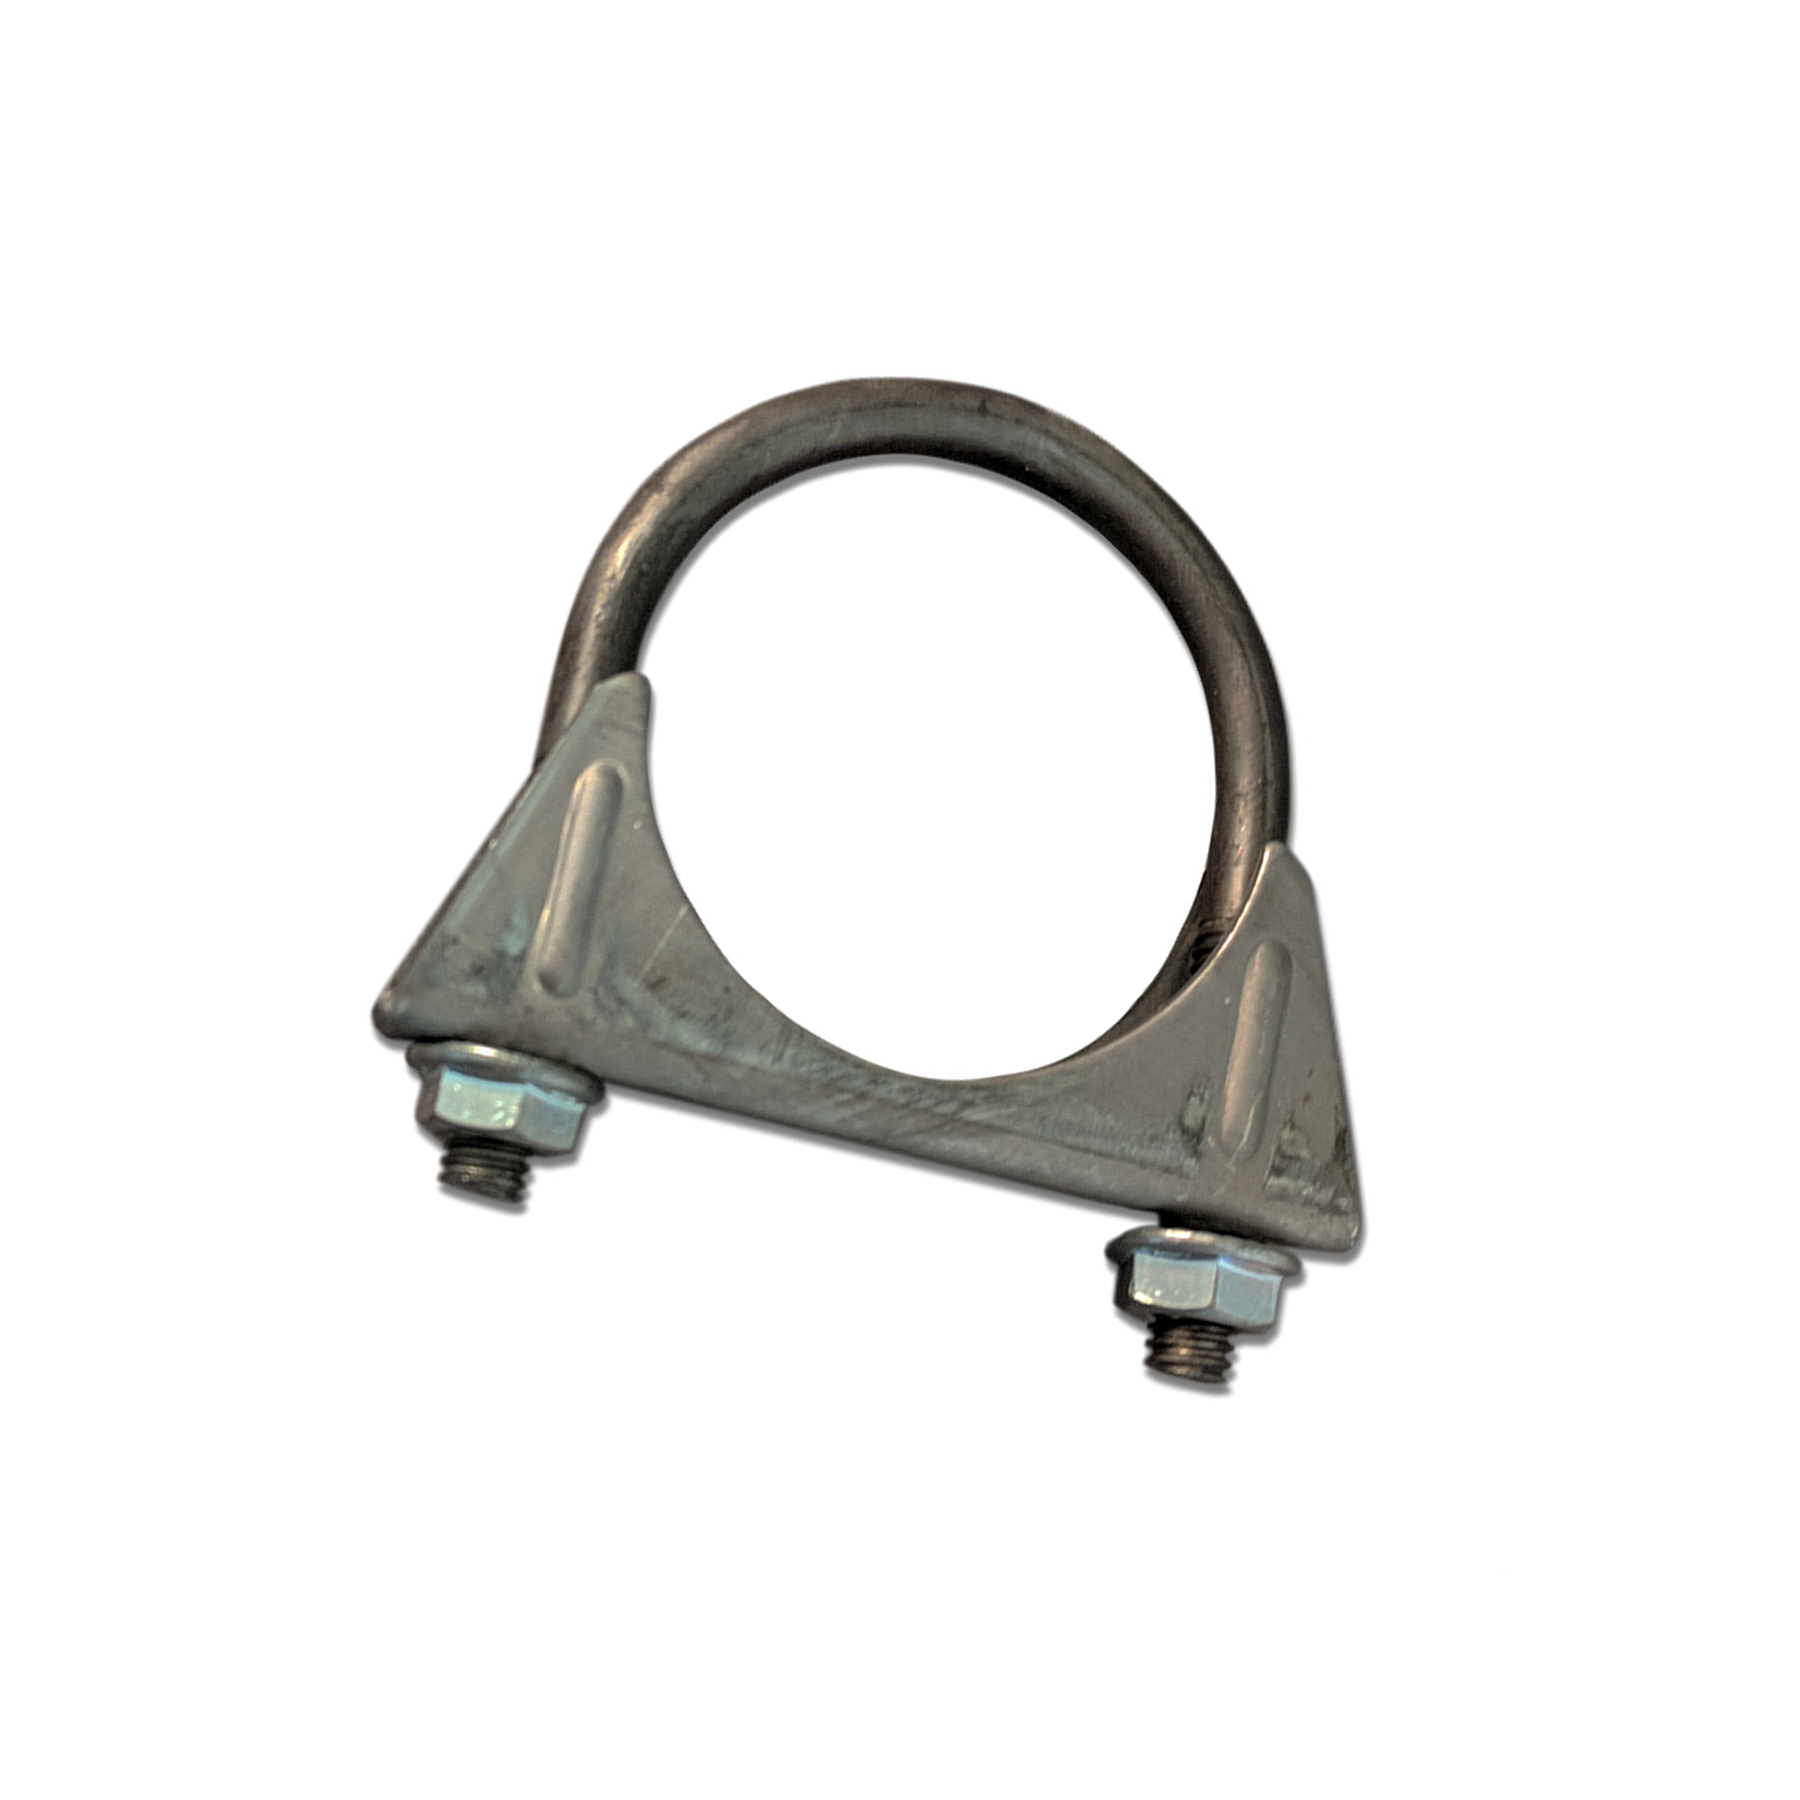 Stainless Steel Exhaust Clamp, 2.25